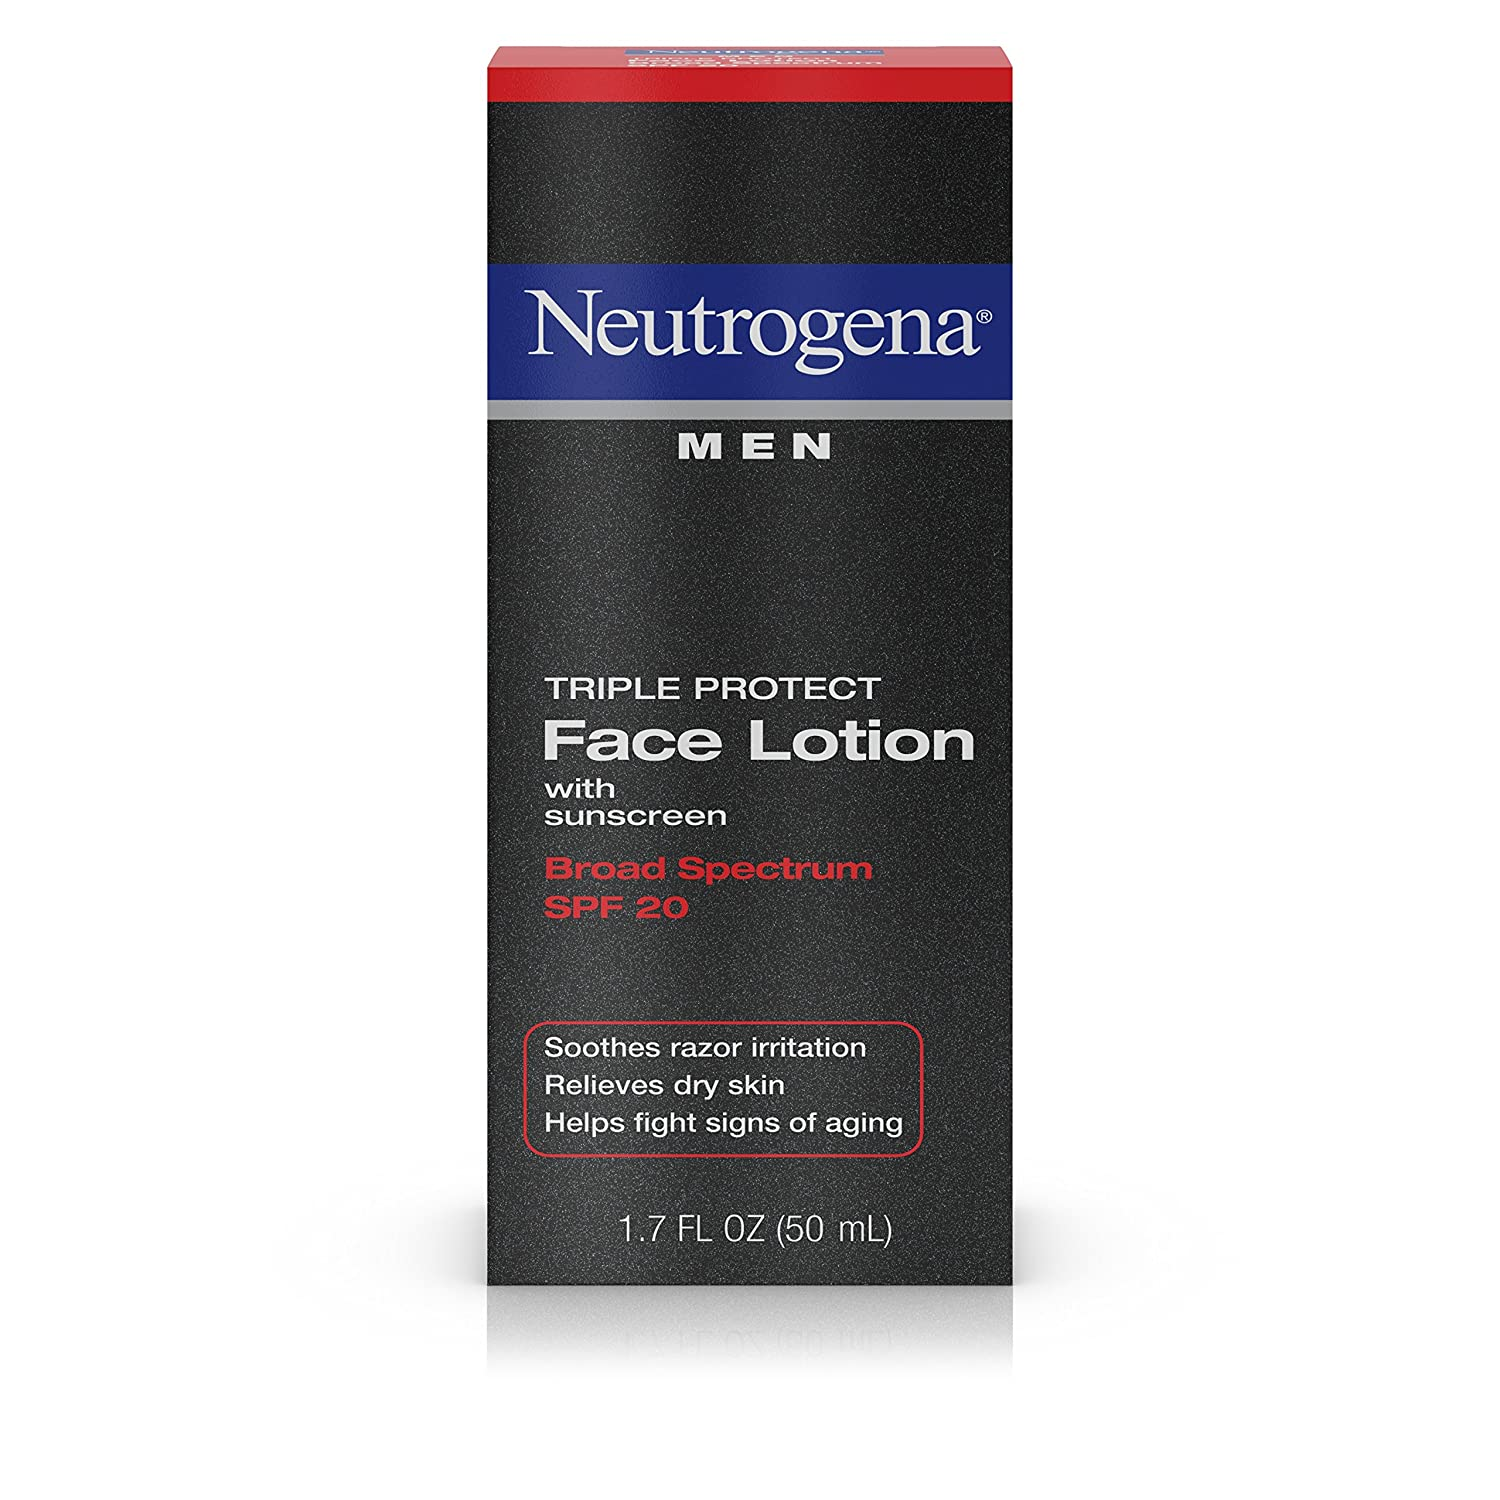 Neutrogena Triple Protect Men's Daily Face Lotion with Broad Spectrum SPF 20 Sunscreen, Moisturizer to Fight Aging Signs, Soothe Razor Irritation & Relieve Dry Skin, 1.7 fl. oz ( Pack of 2) Johnson & Johnson SLC 070501020135